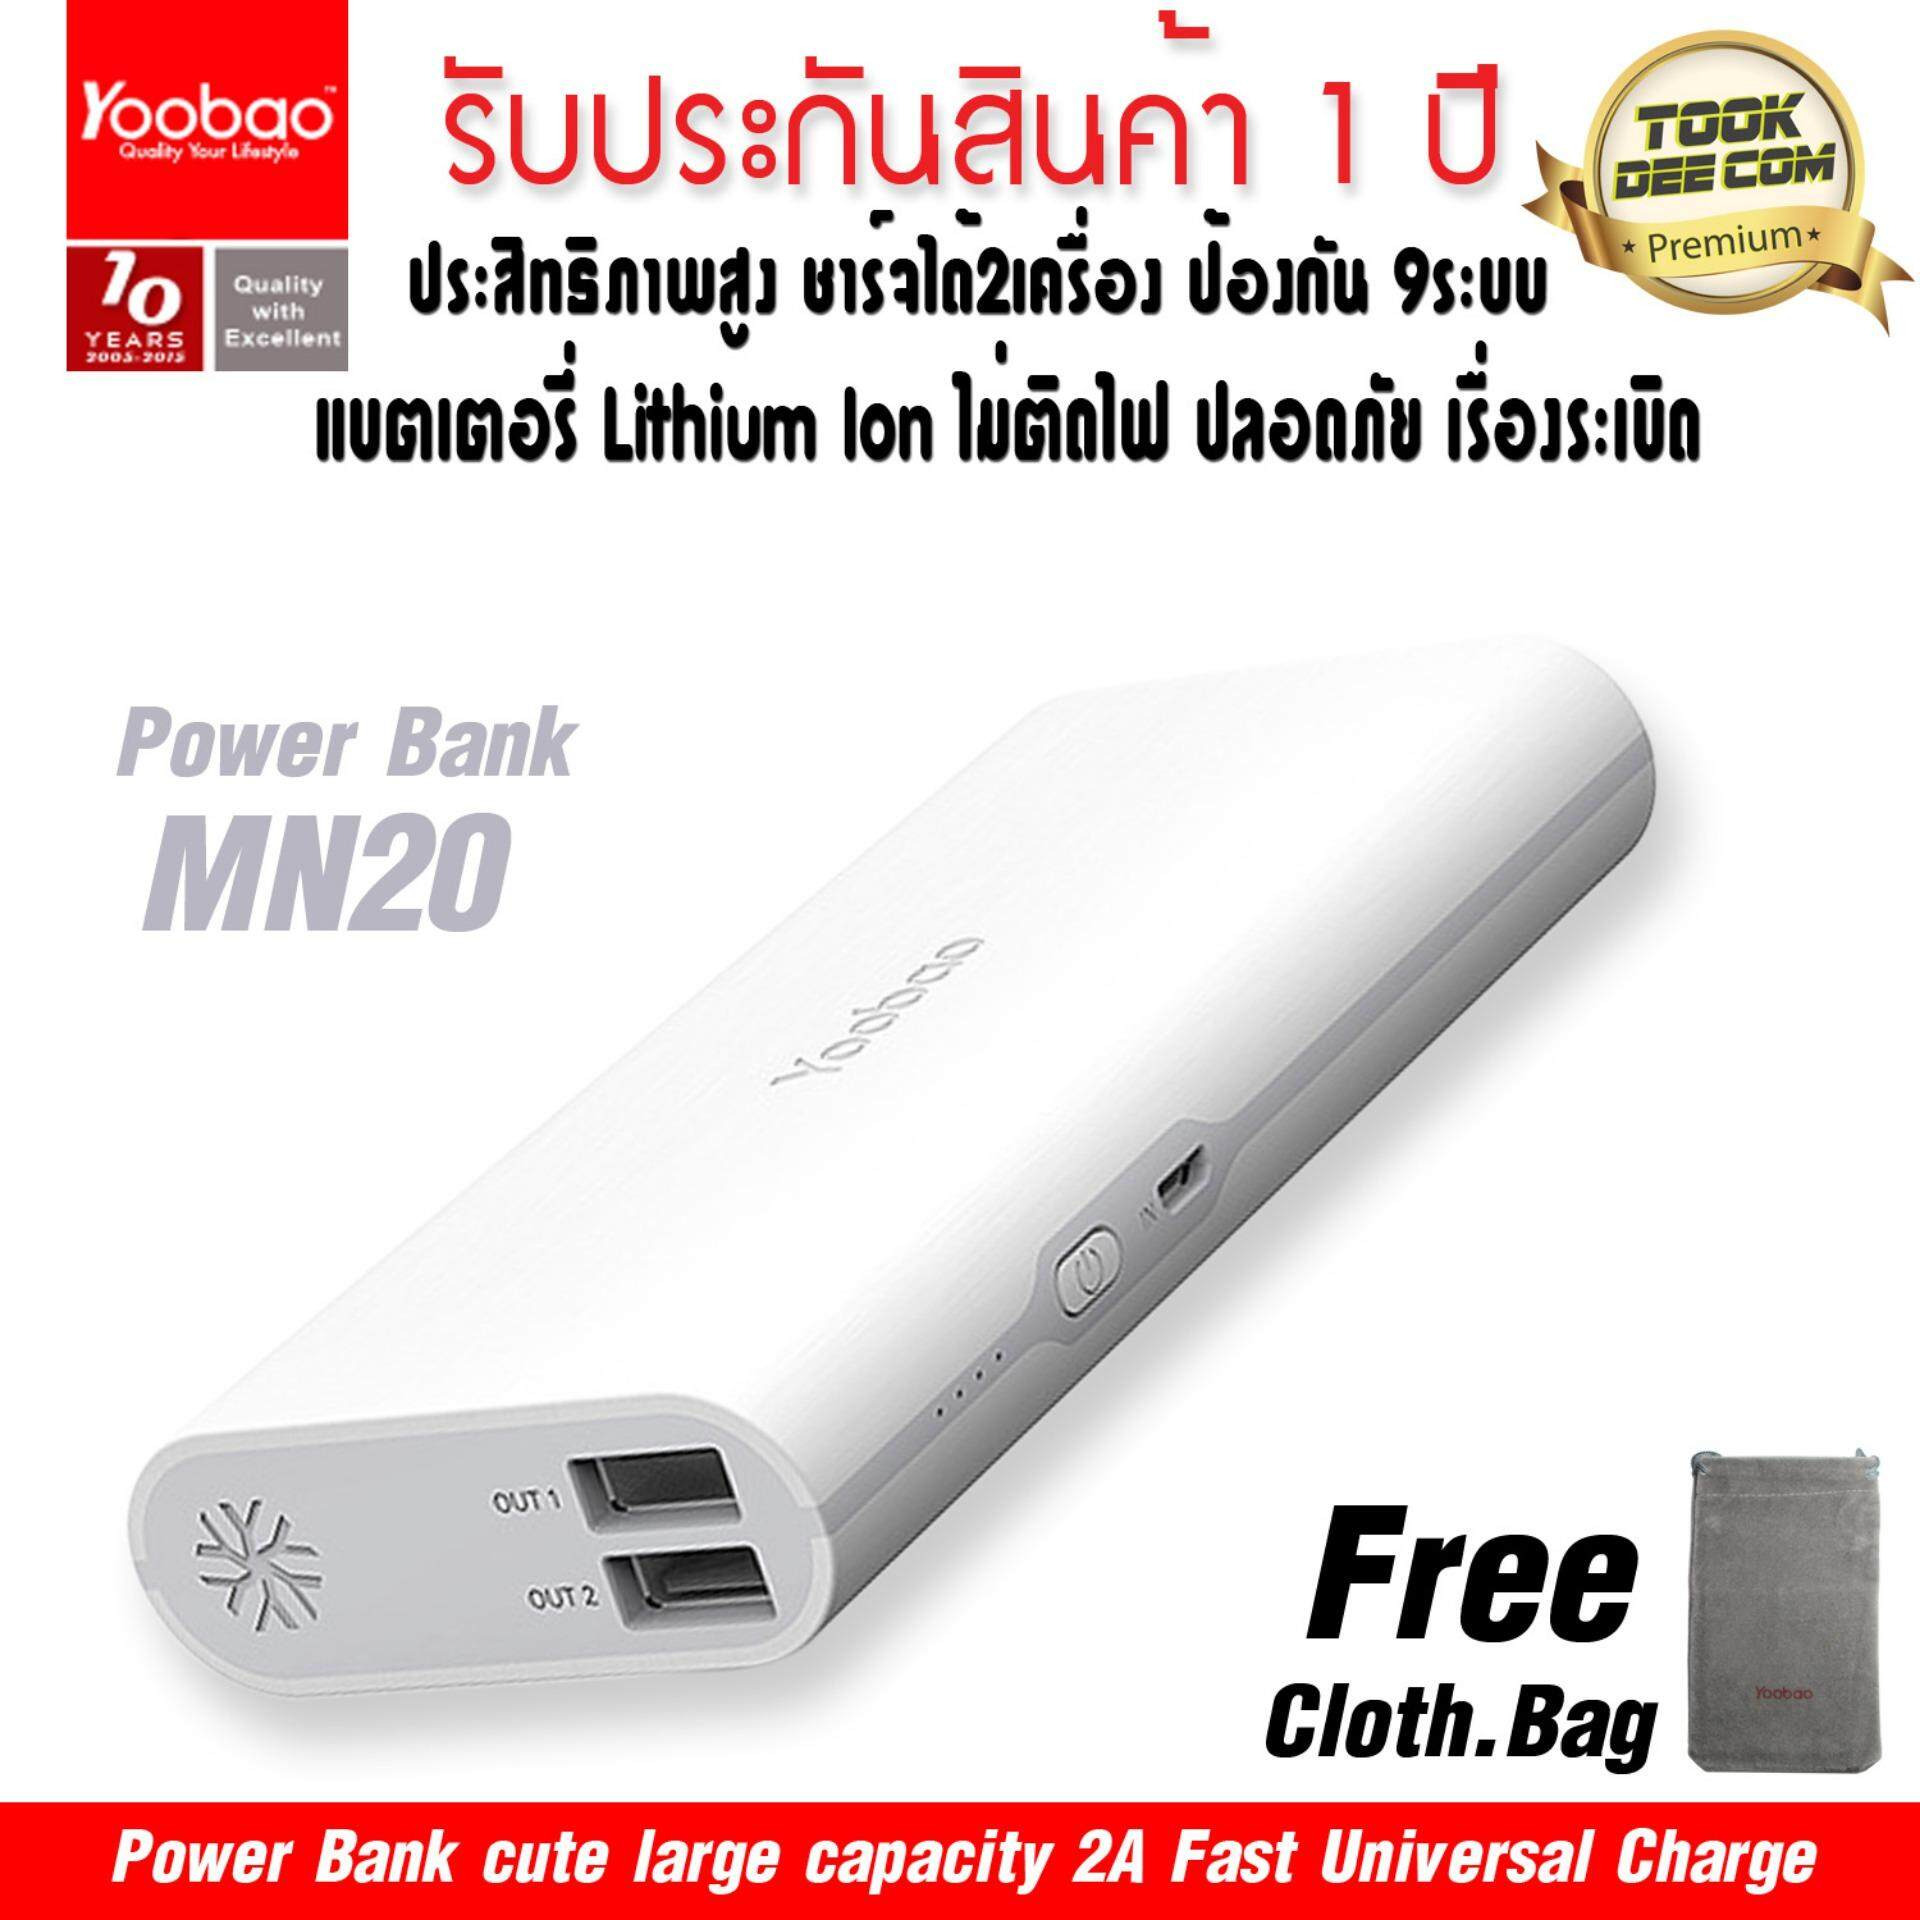 (ของแท้) Yoobao 20000mAh MN20 Power Bank cute large capacity 2A Fast Universal Charge + Cloth.Bag